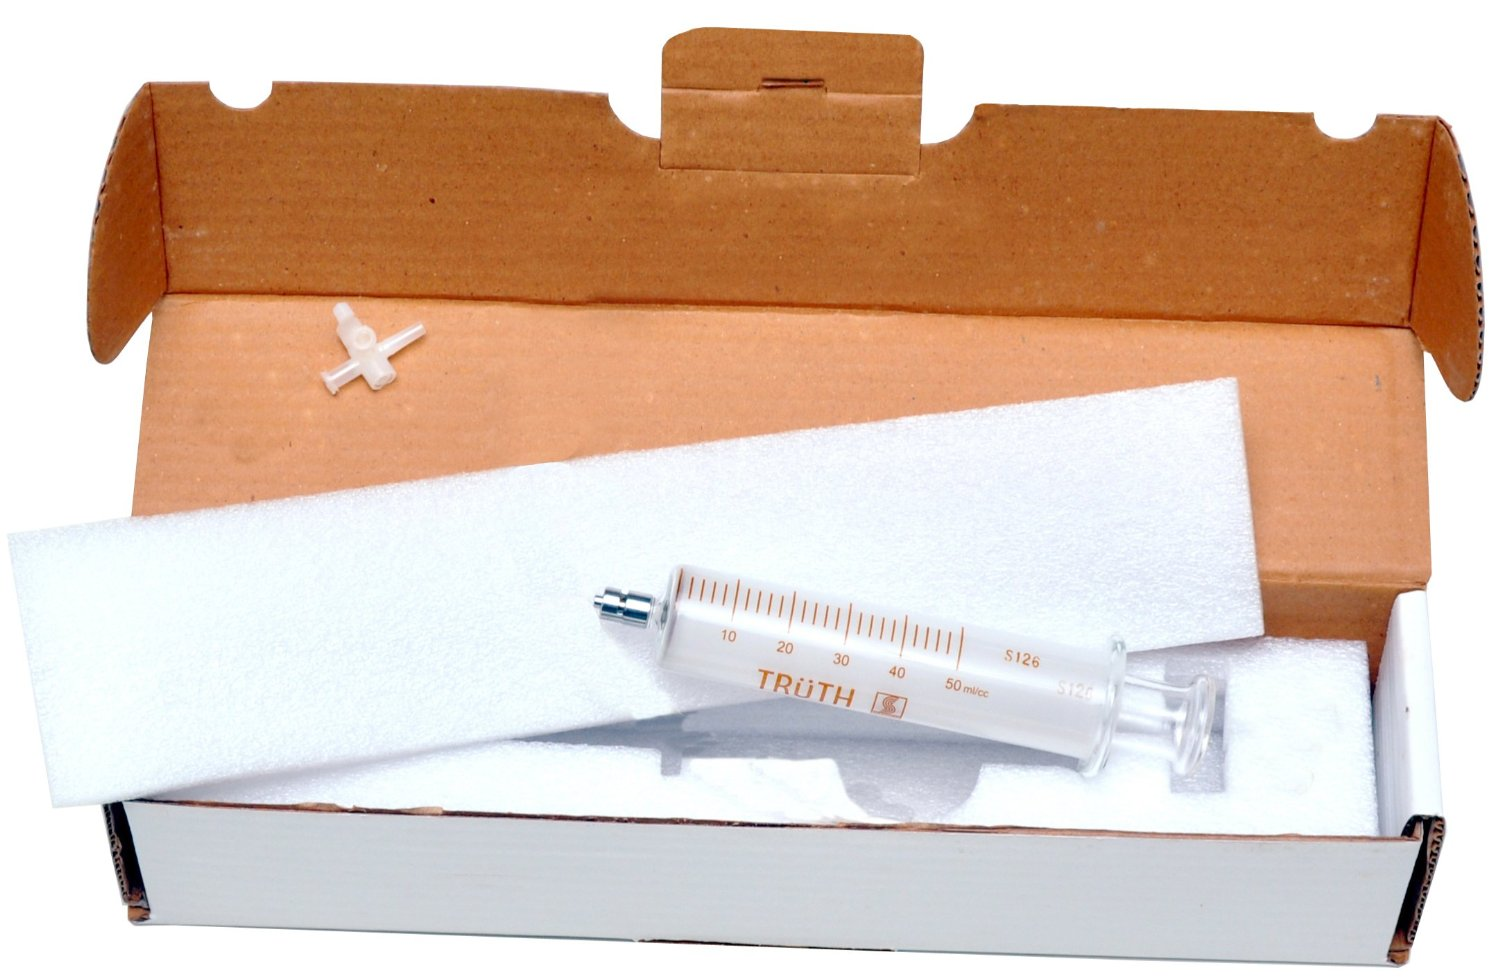 50ml DGA TRUTH Glass Syringe - 3 Way Stopcock - Padded Carrying Case